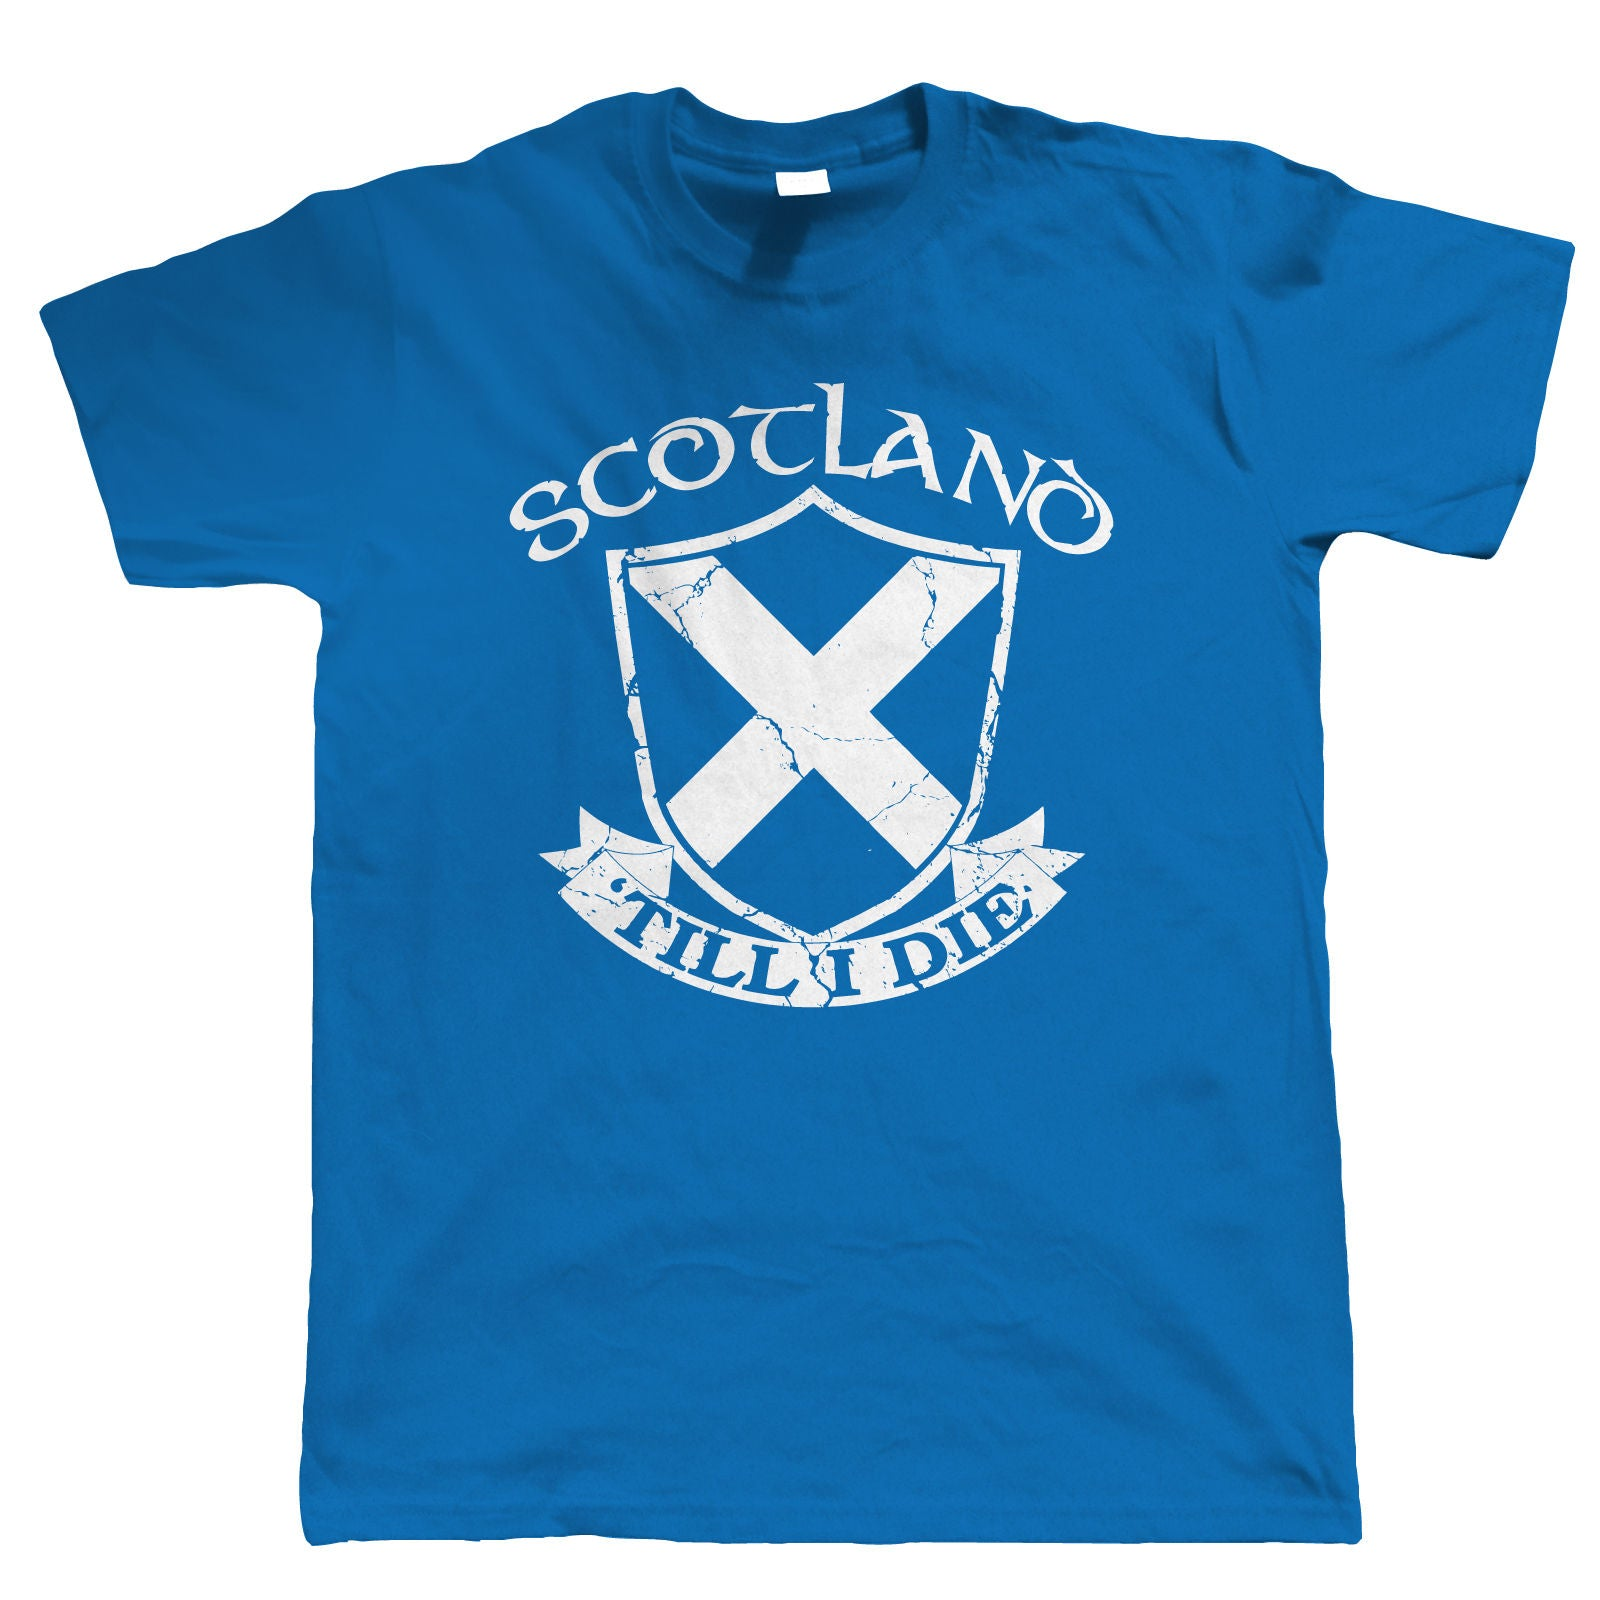 Scotland 'Till I Die, Mens Patriotic T Shirt